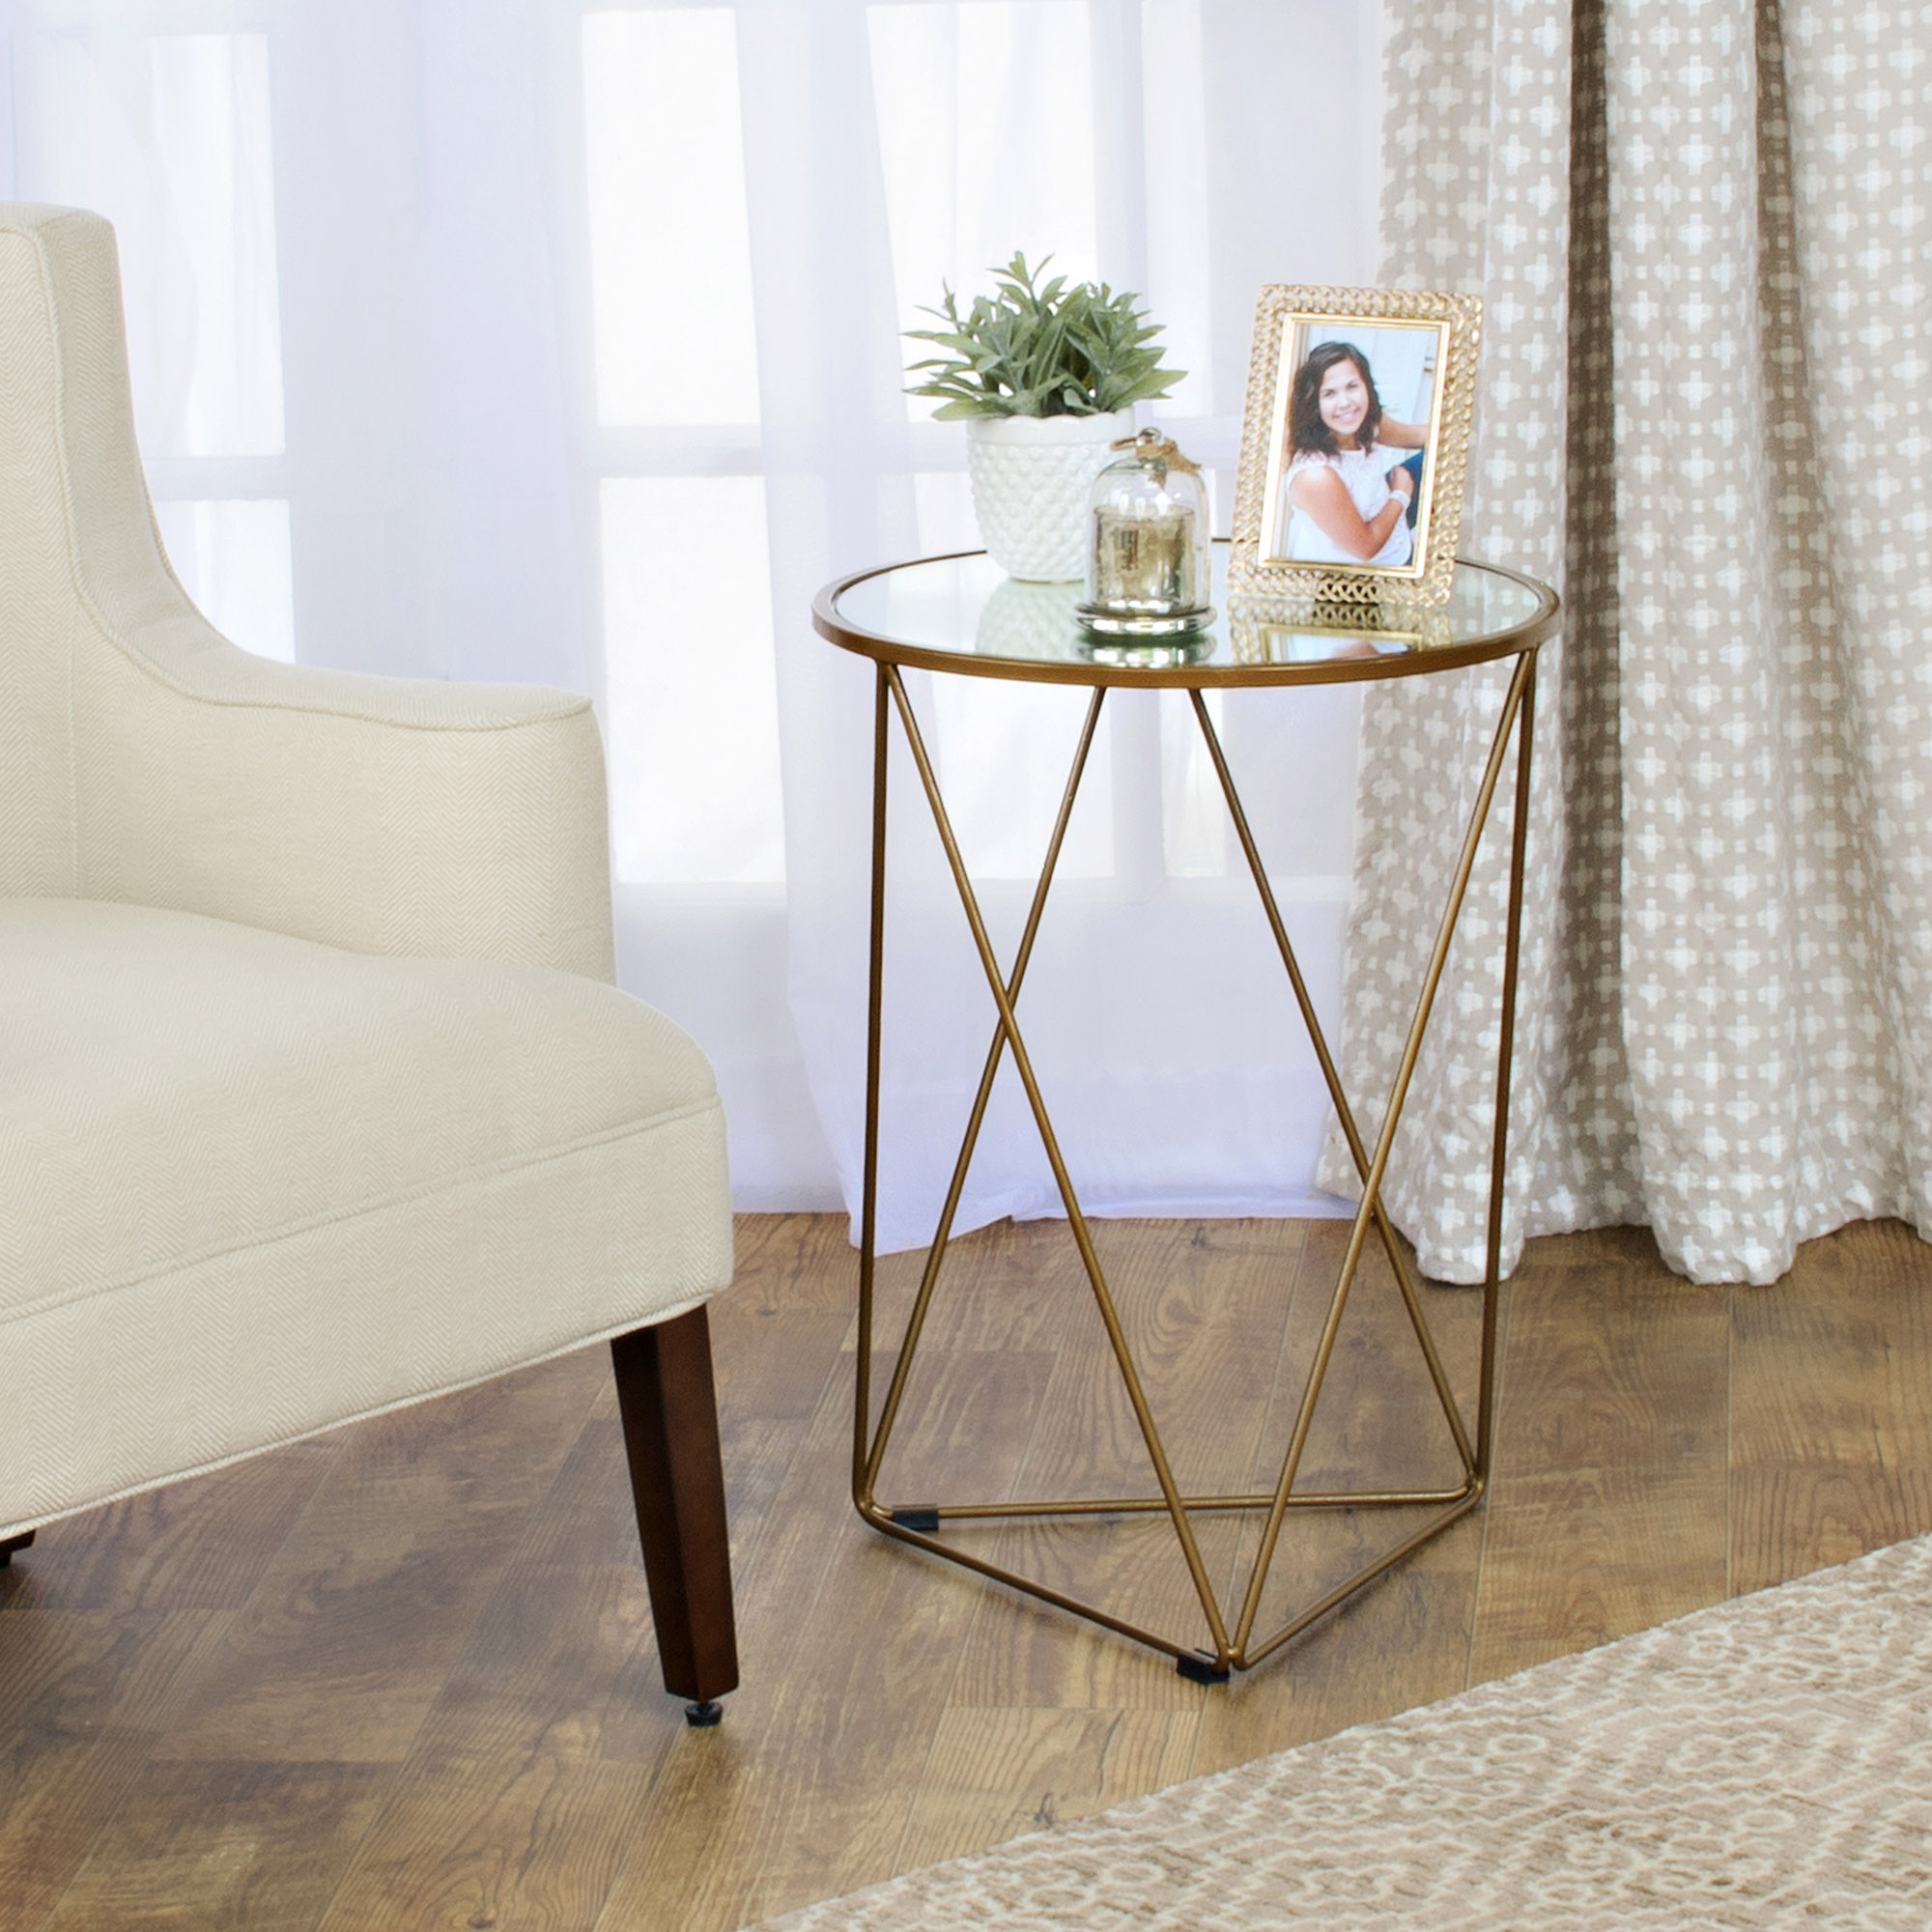 glass accent table cylinder lamp small and metal tables living room top with navona plus round together lamps well full size dale tiffany hanging long bar chairs mosaic kitchen